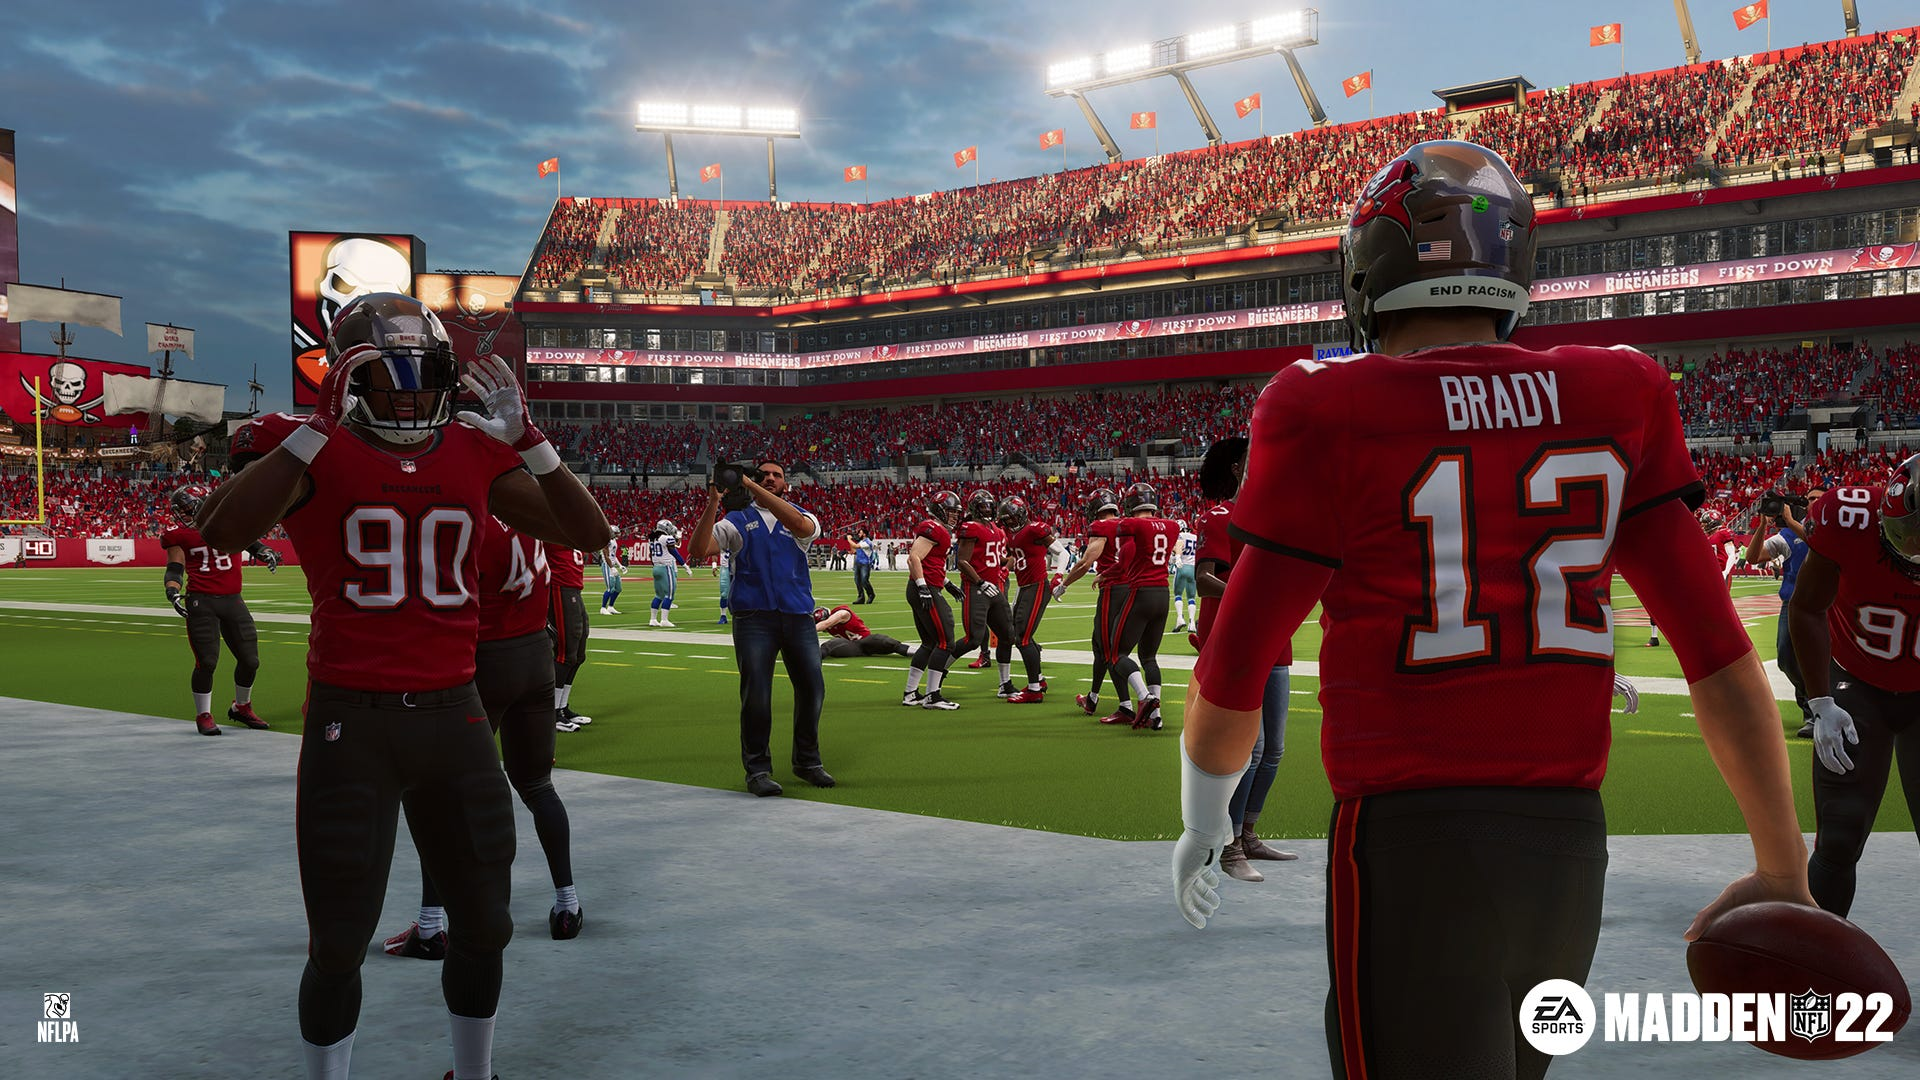 Madden NFL 22 : Tom Brady, Patrick Mahomes on video game cover, but inside are new realistic tweaks